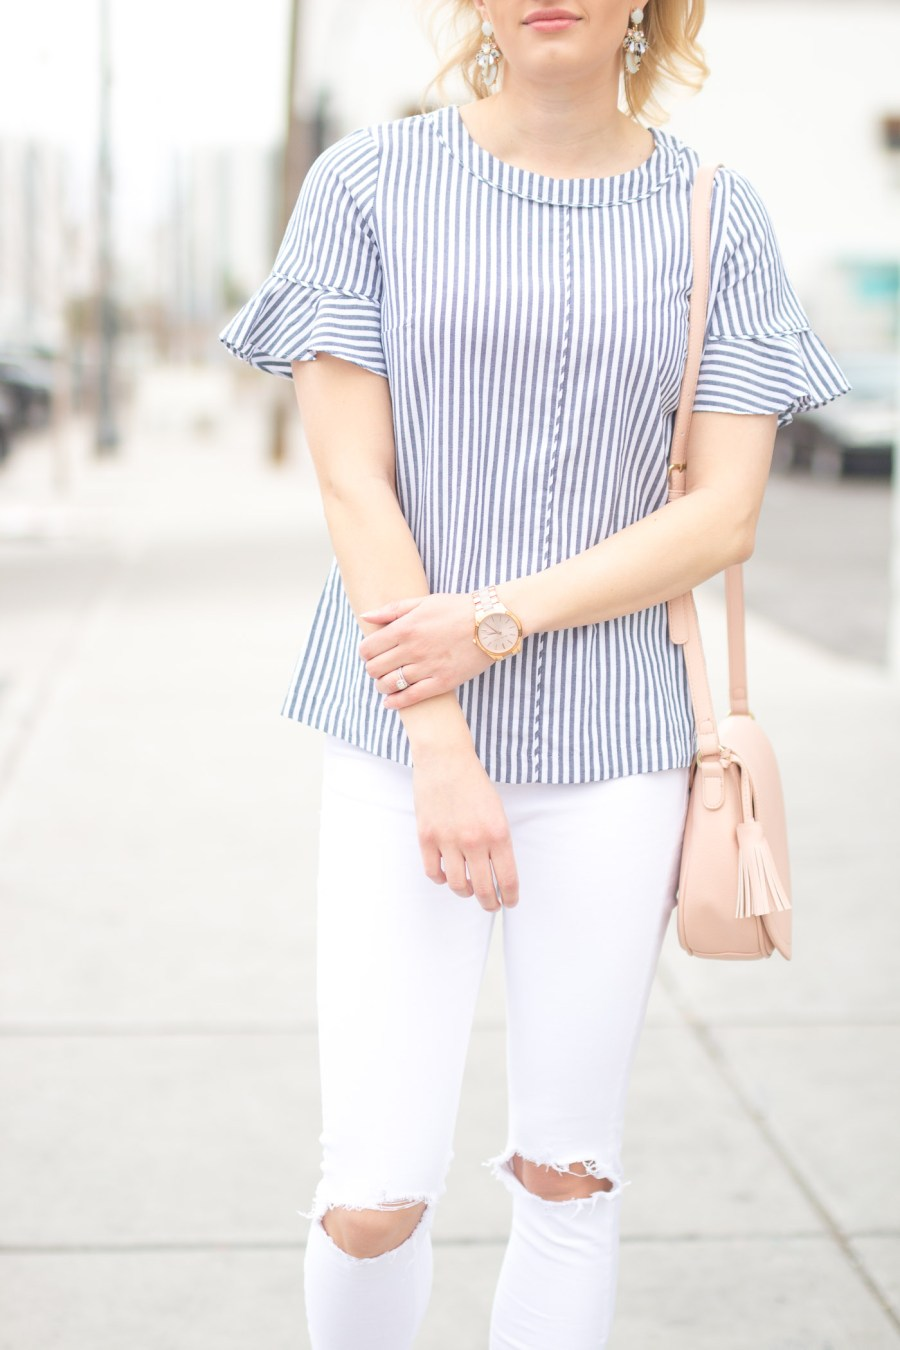 Spring and Summer 2017 Trend: Thin Stripes, Banana Republic blouse, ruffle sleeves, fashion blog, Treats and Trends